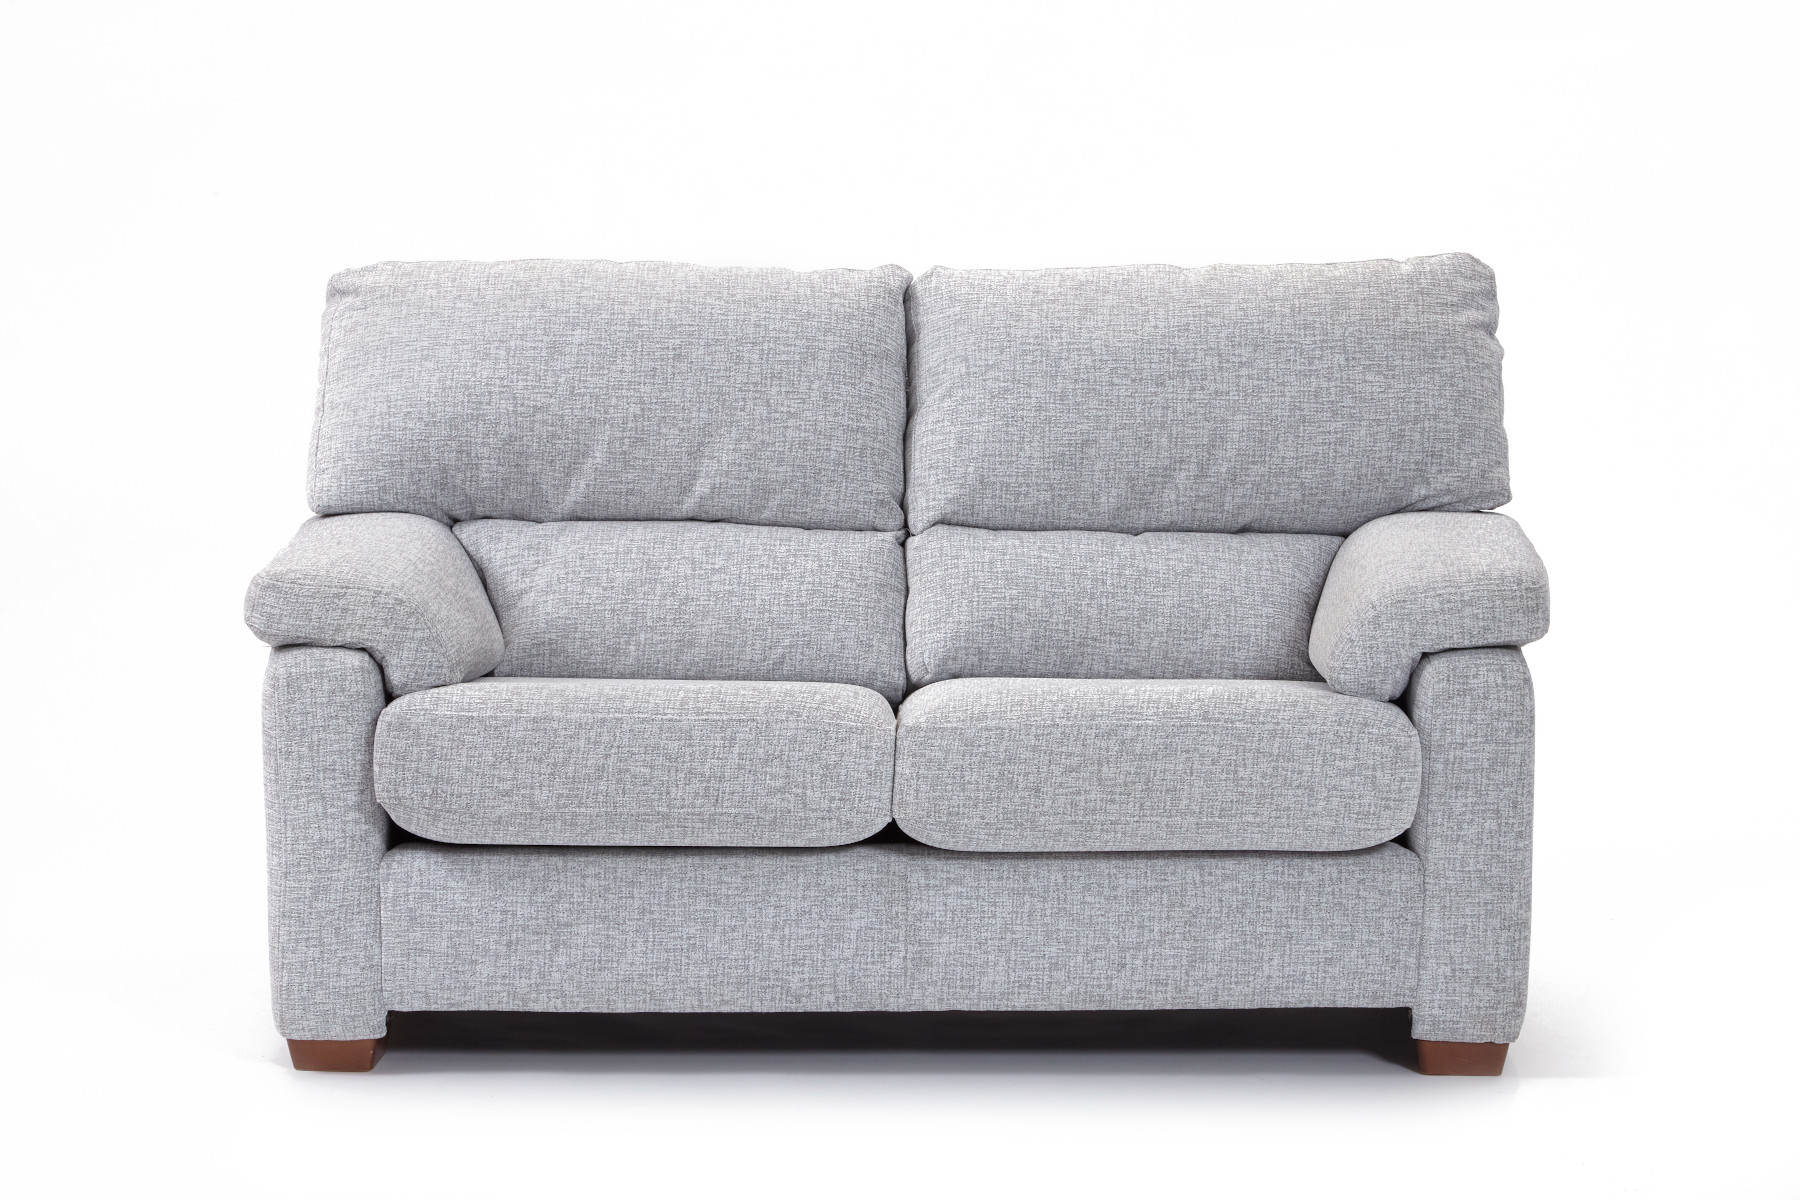 Baldwin 2 Seater Sofa